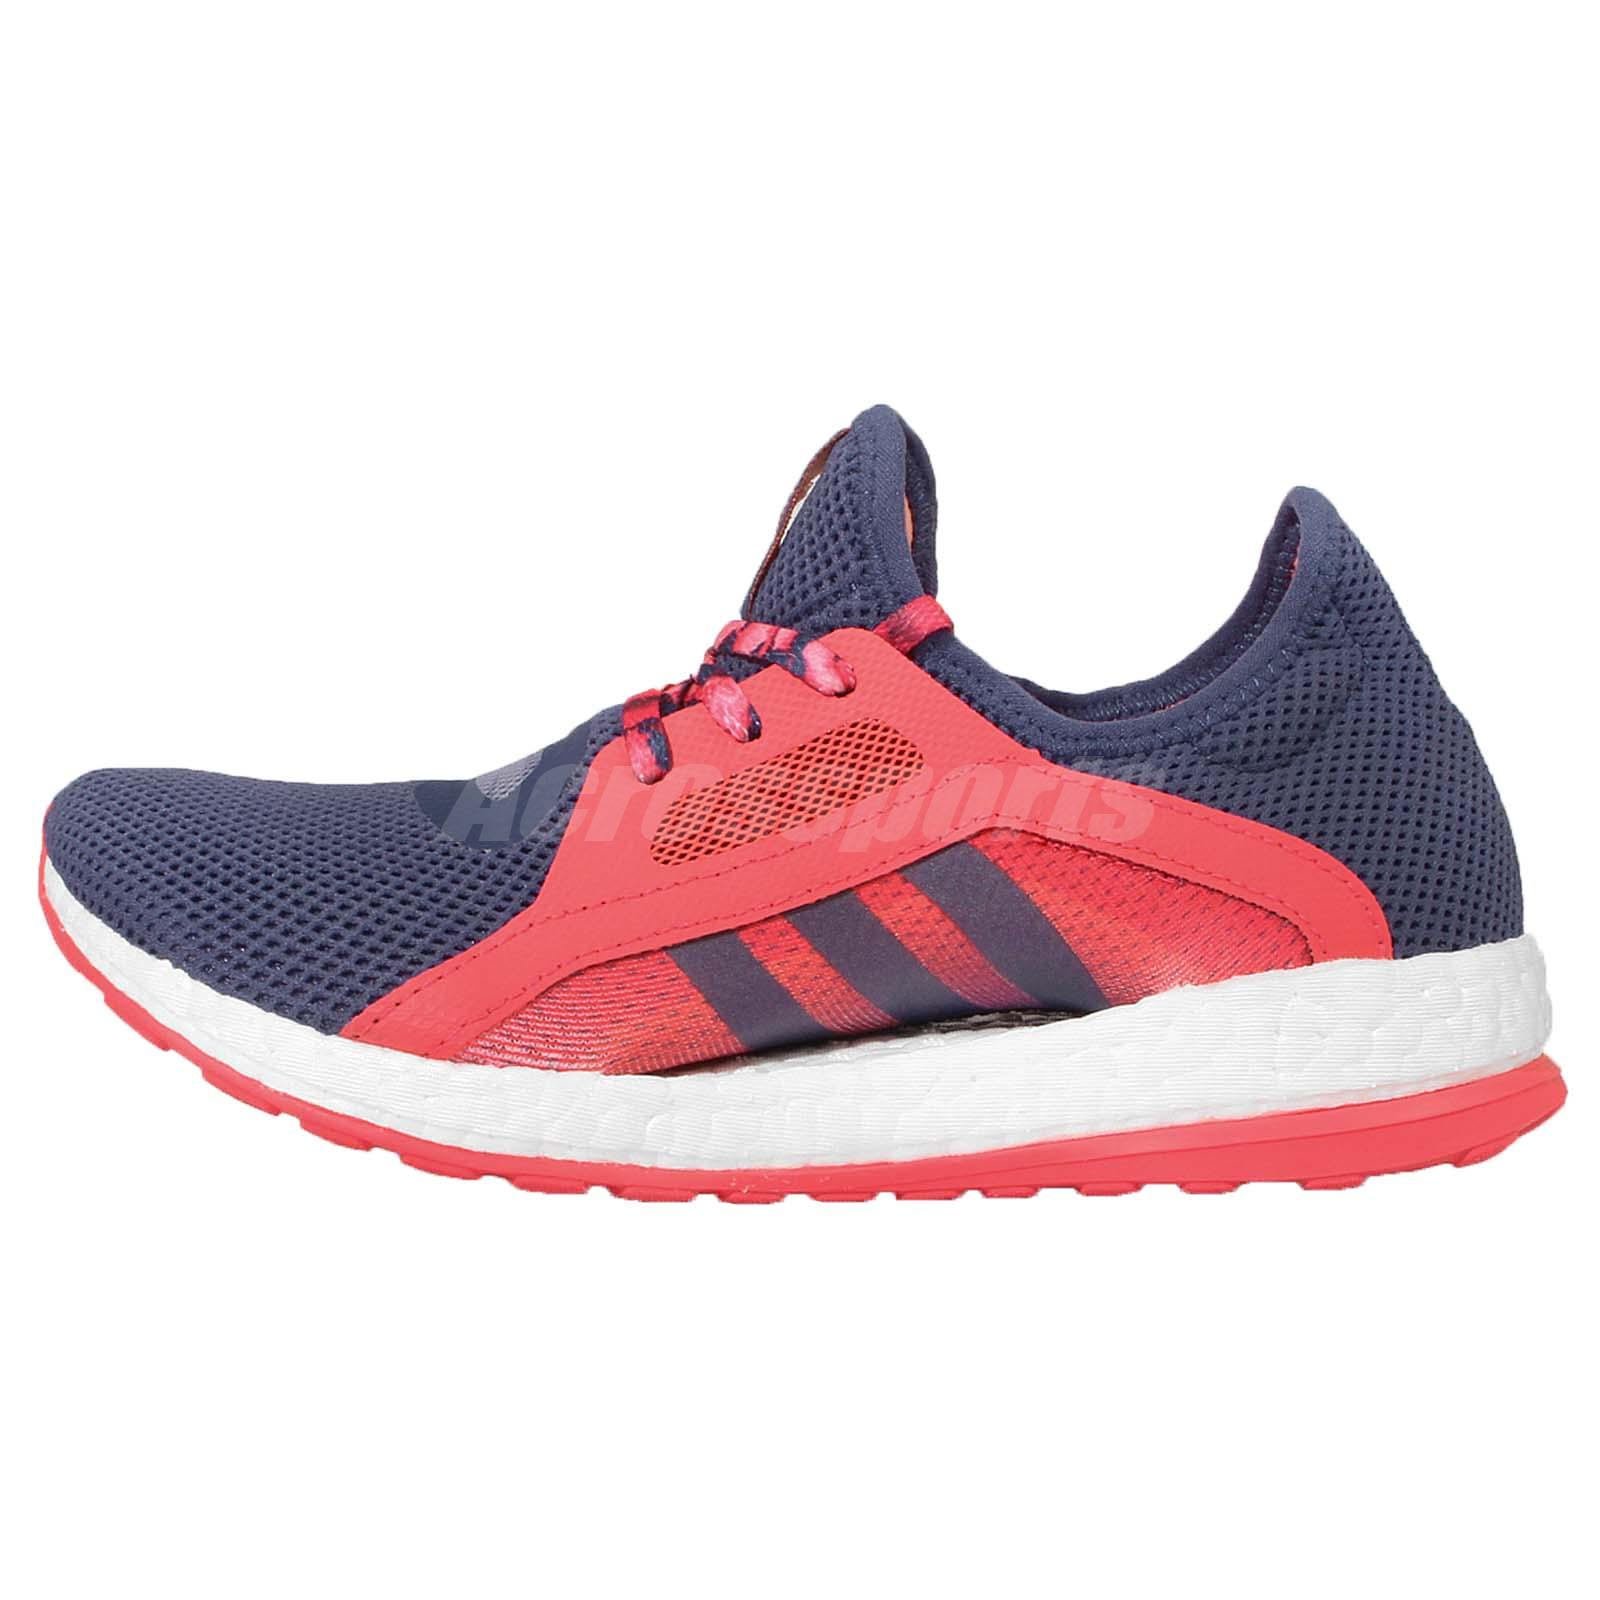 Best Womens Running Shoes Arch Support - 28 Images ...